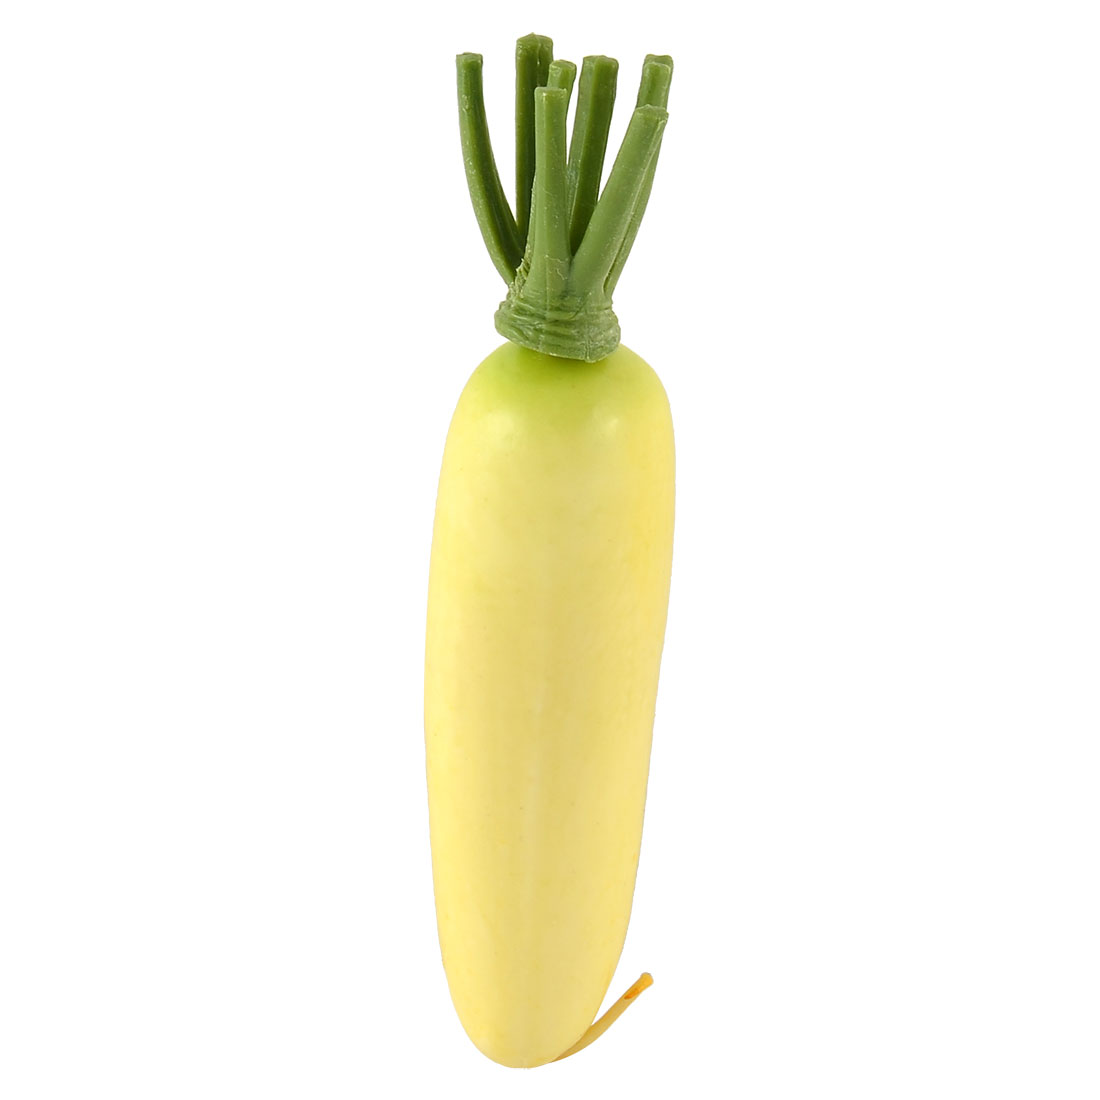 Artificial Vegetable Plastic Lifelike Decor Handmade Simulation Radish Yellow